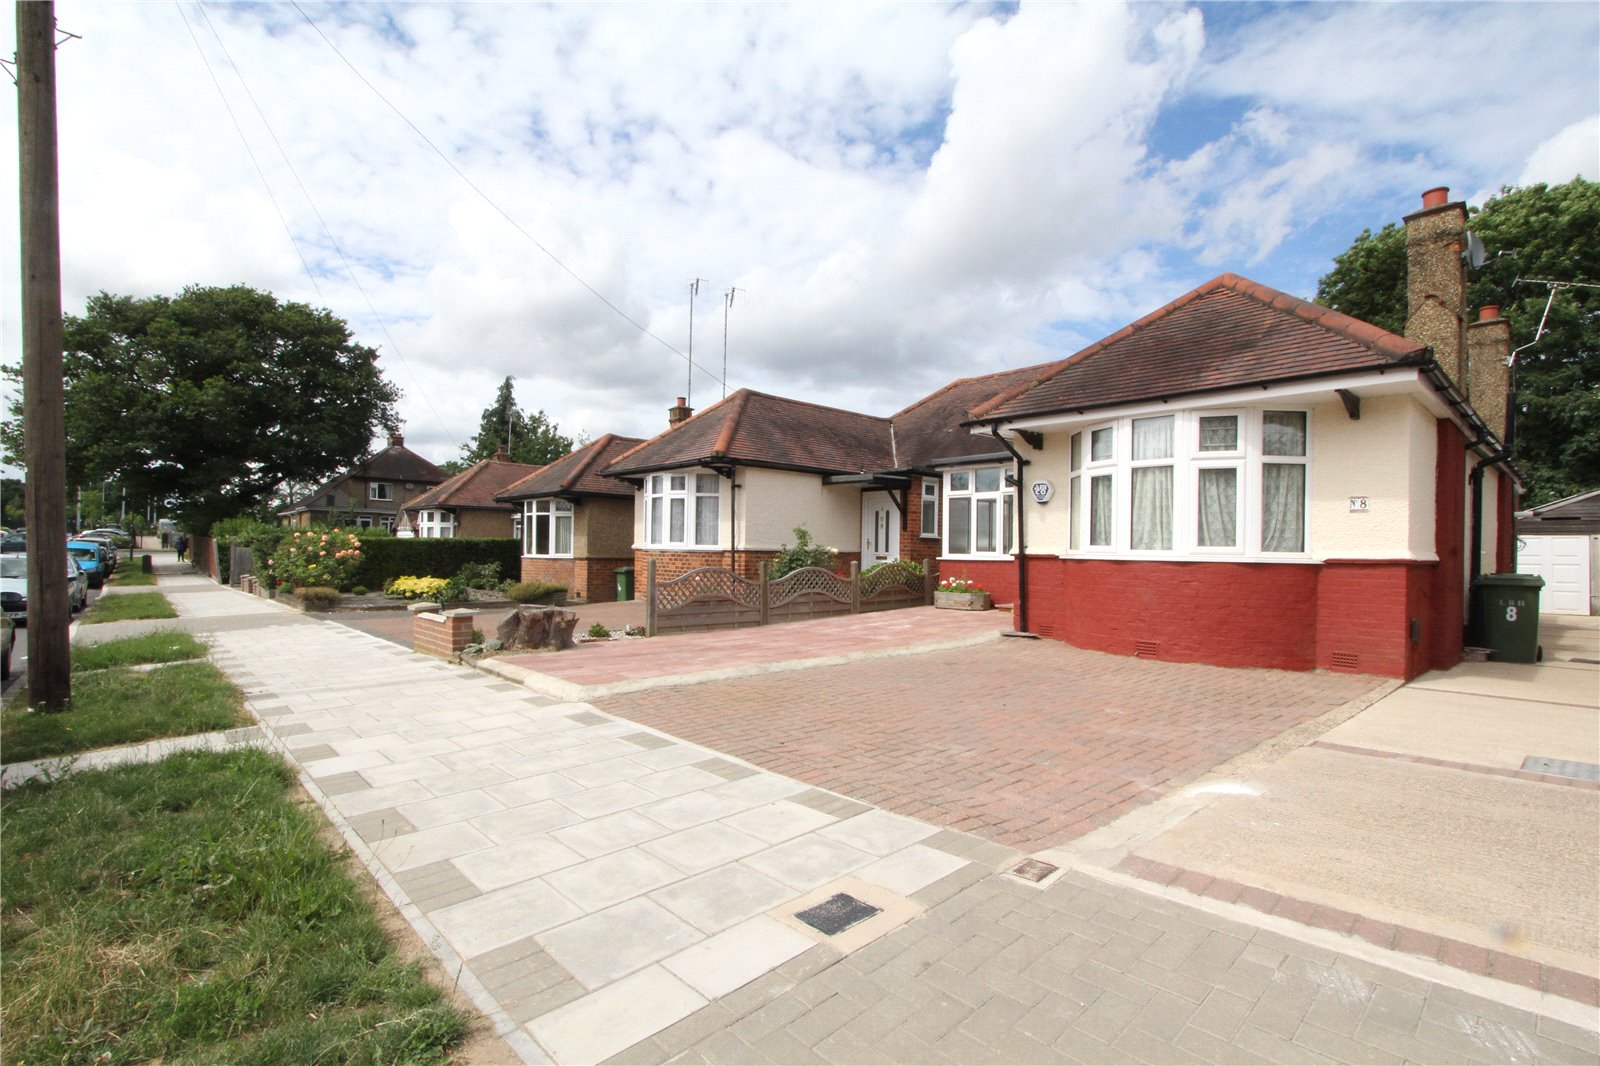 3 Bedrooms Bungalow for sale in Ferring Close Harrow HA2